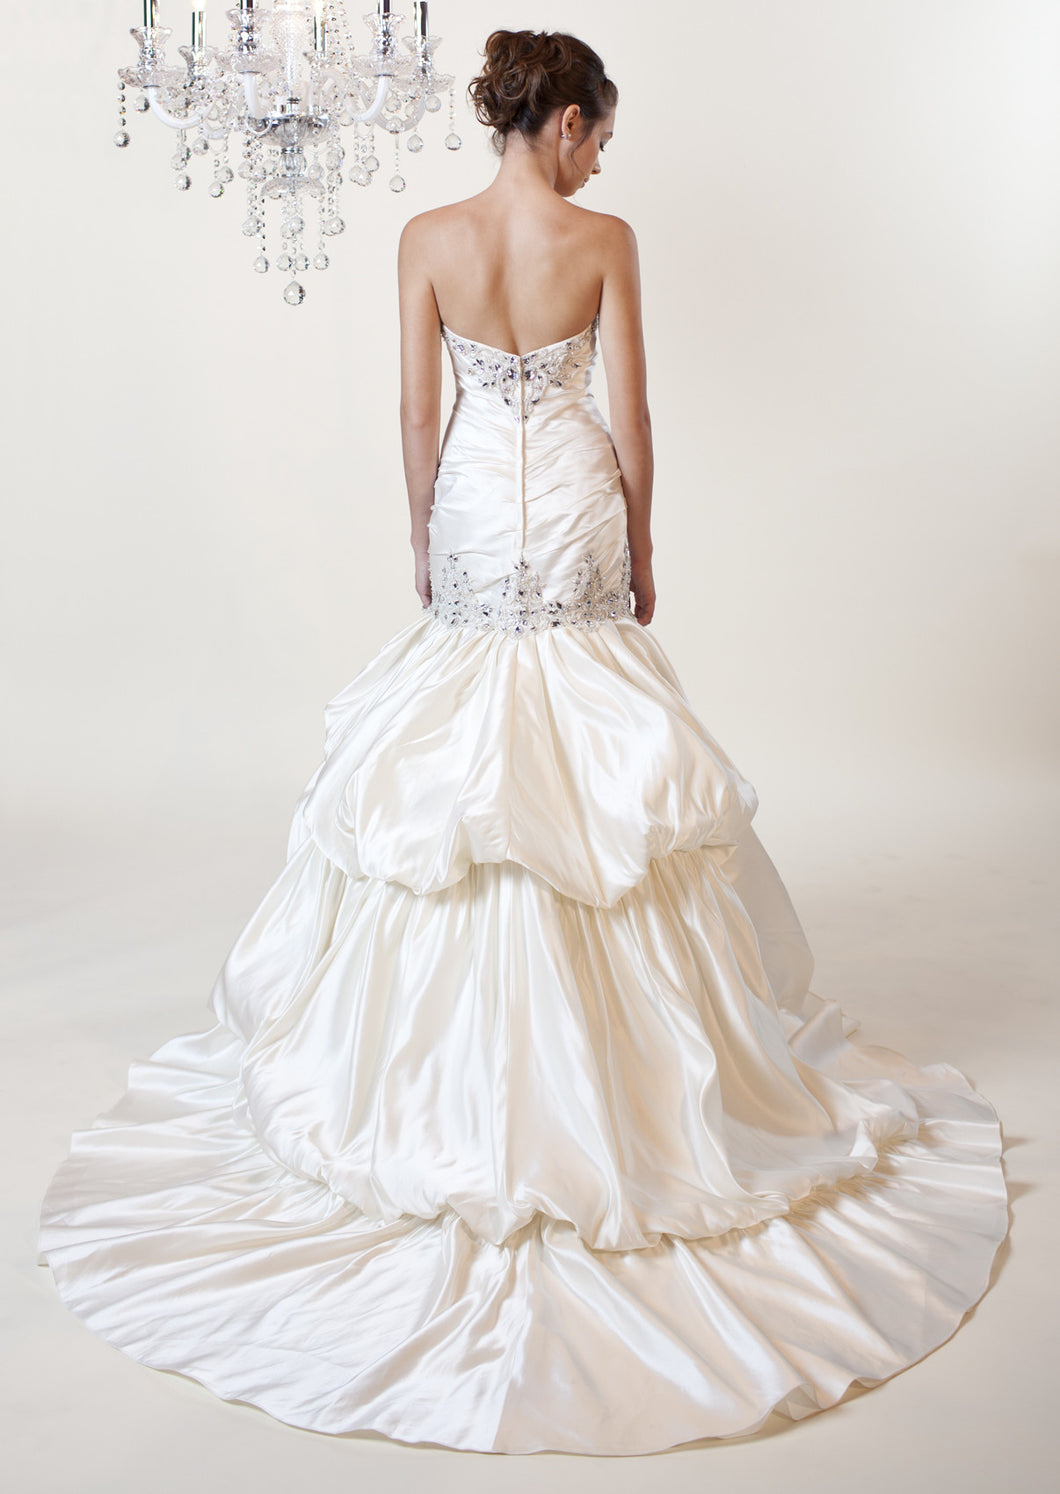 Winnie Couture 'Aaliyah 3175' - Winnie Couture - Nearly Newlywed Bridal Boutique - 1